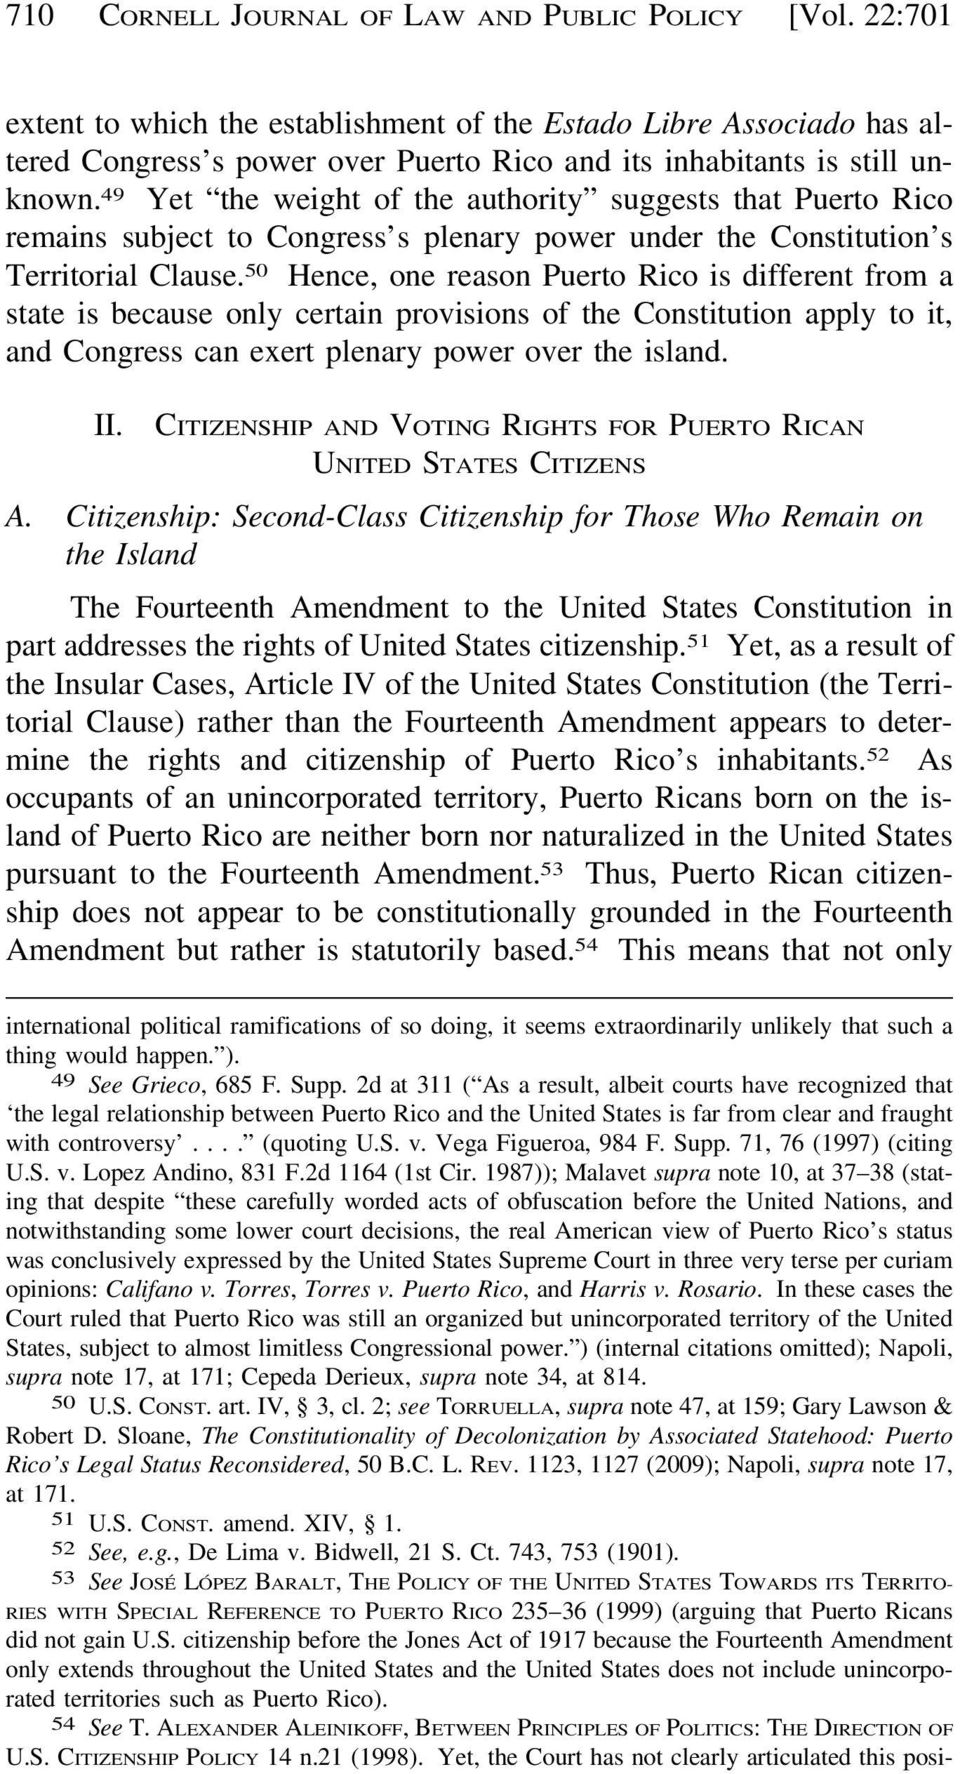 49 Yet the weight of the authority suggests that Puerto Rico remains subject to Congress s plenary power under the Constitution s Territorial Clause.